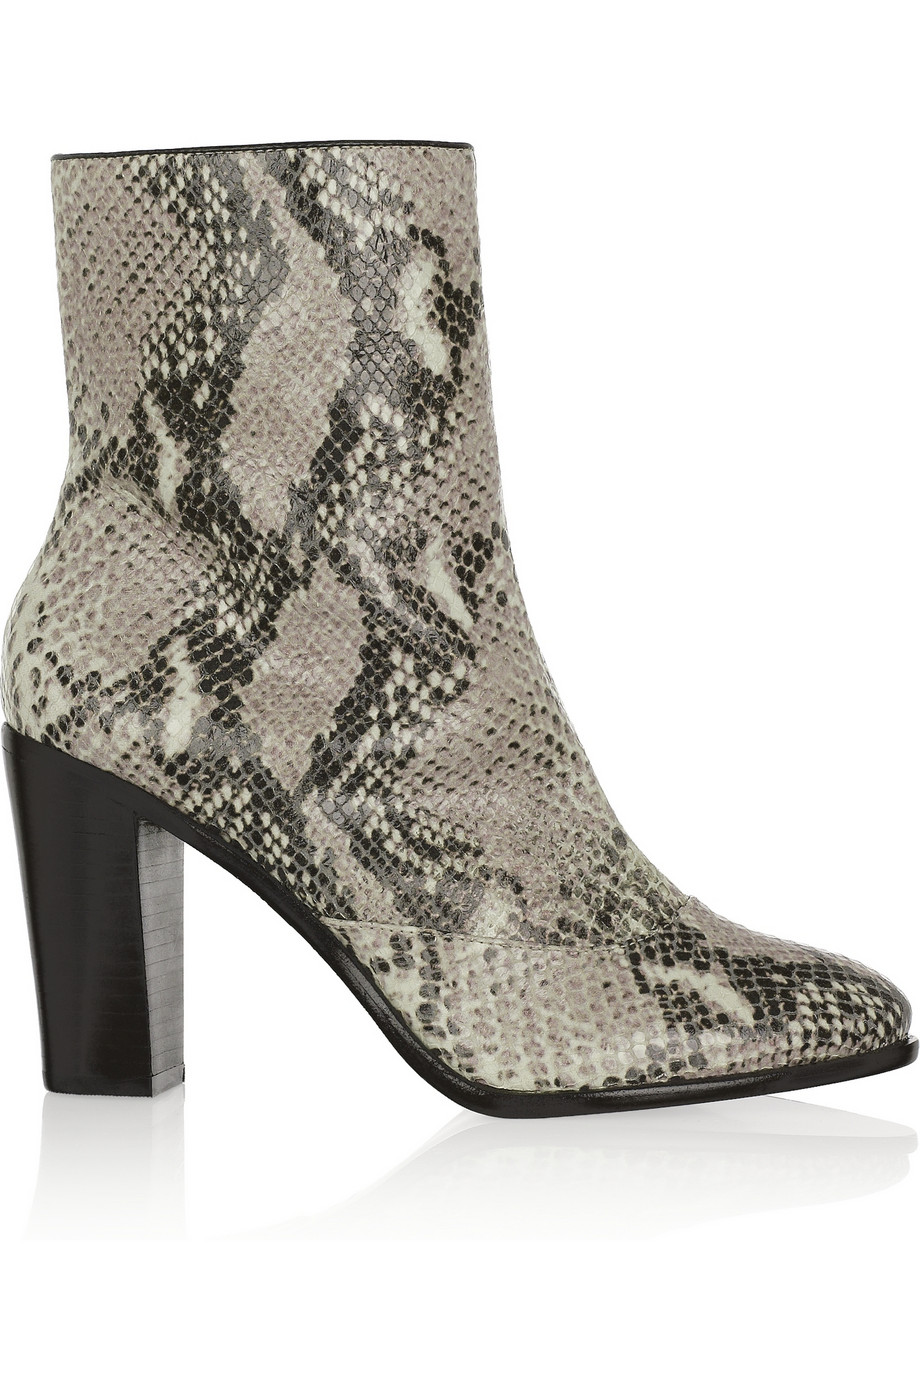 And Snakeskin Ankle Leather Boots